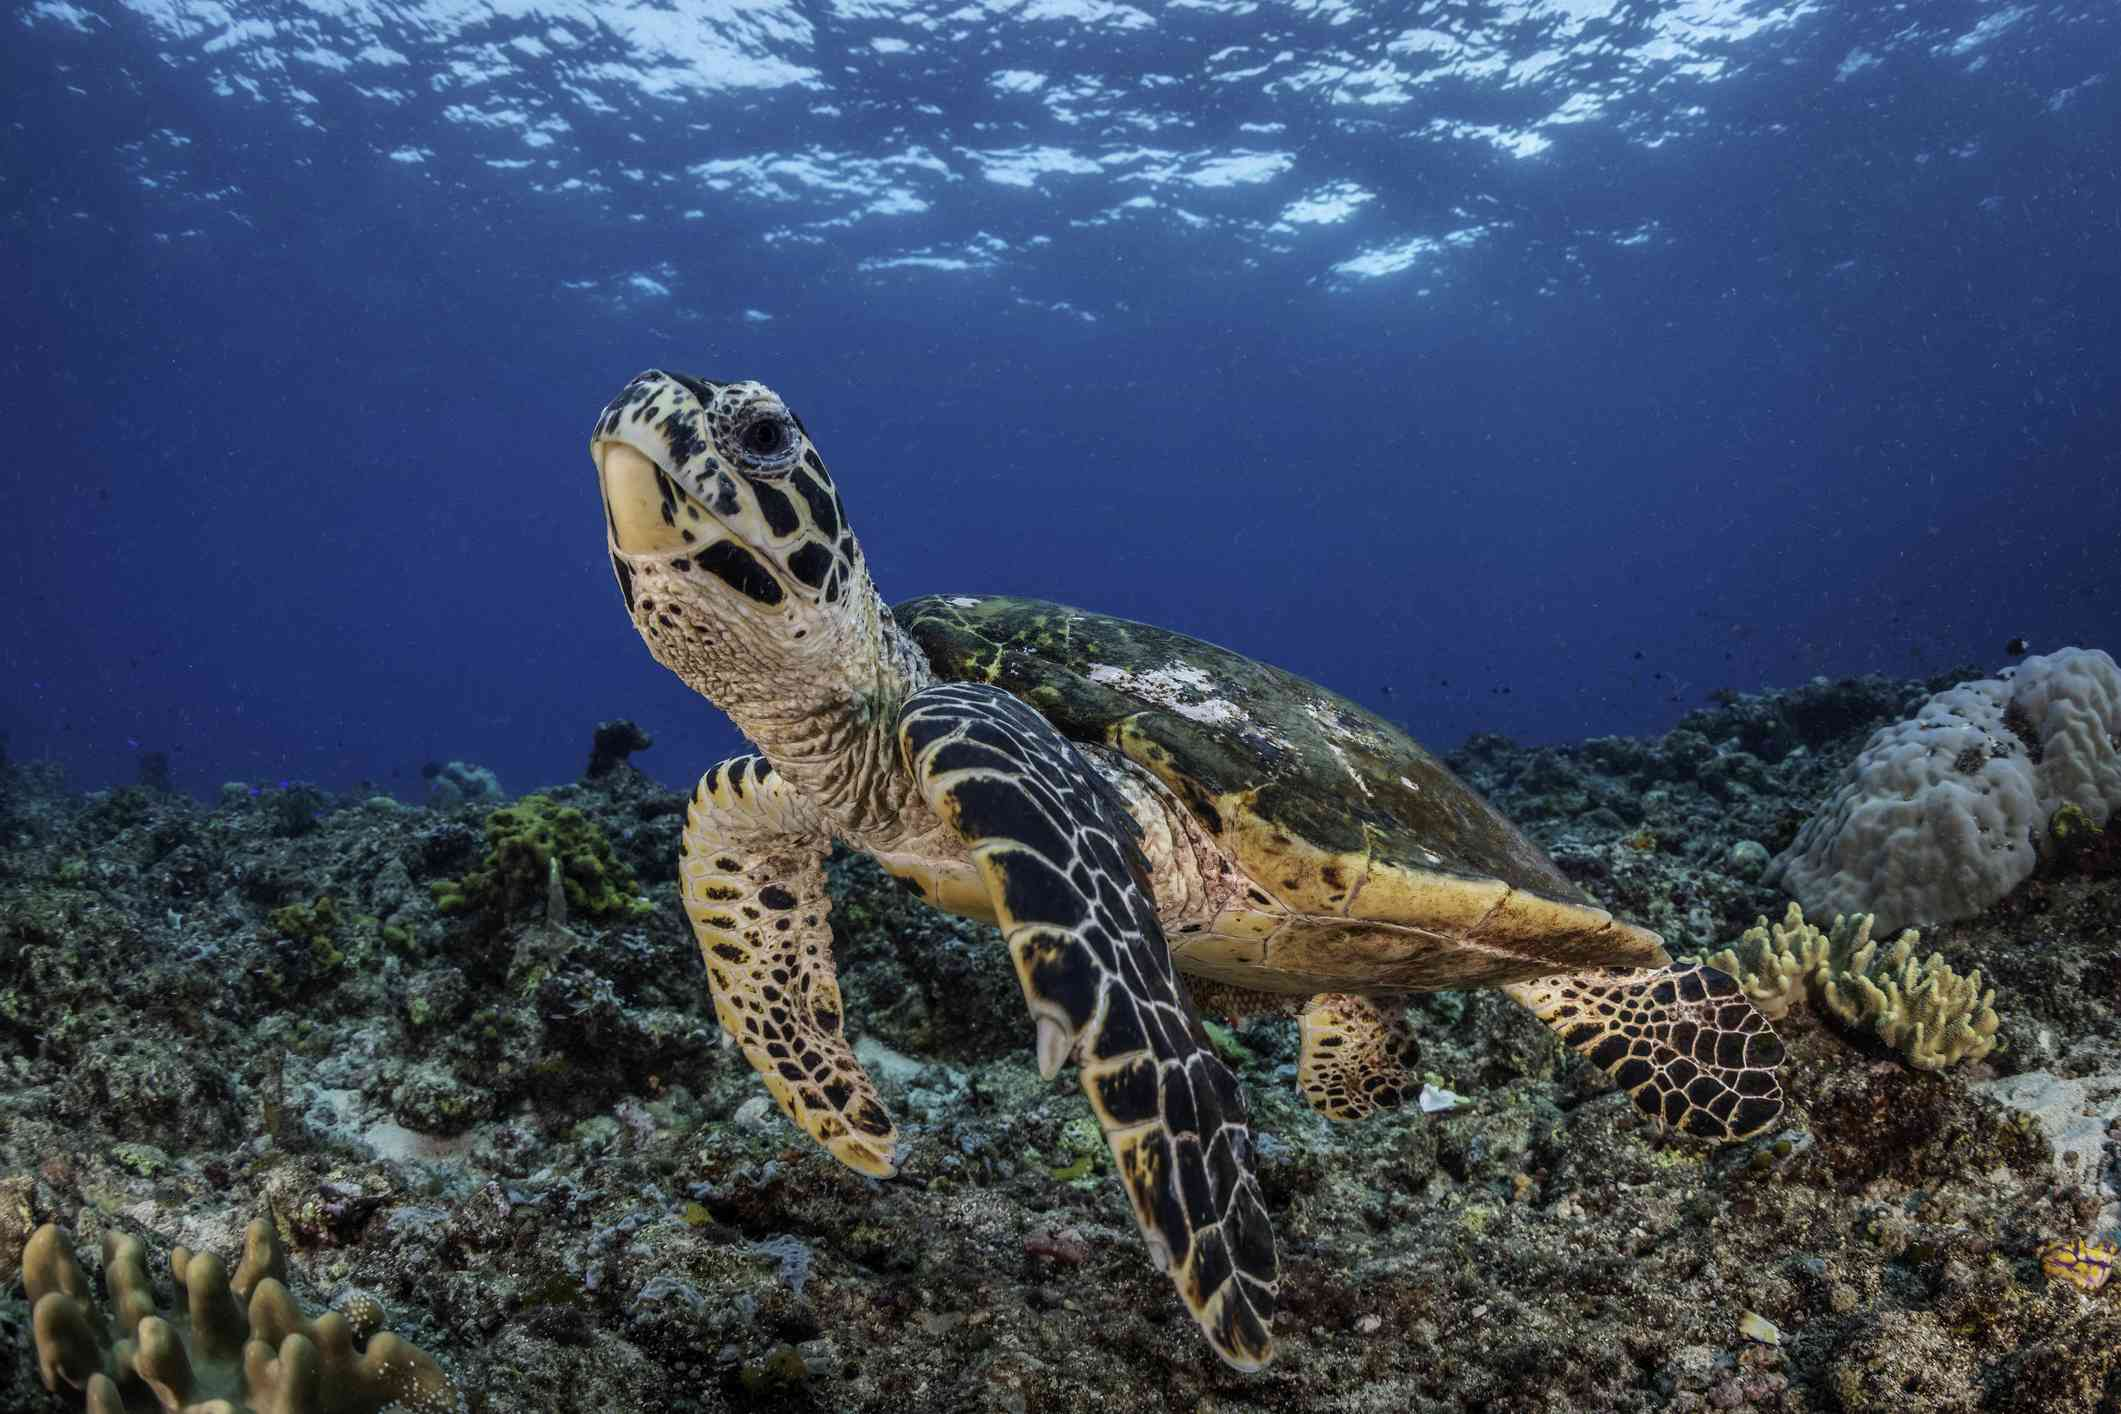 Green and white Hawksbill turtle swimming over the coral reef in the ocean